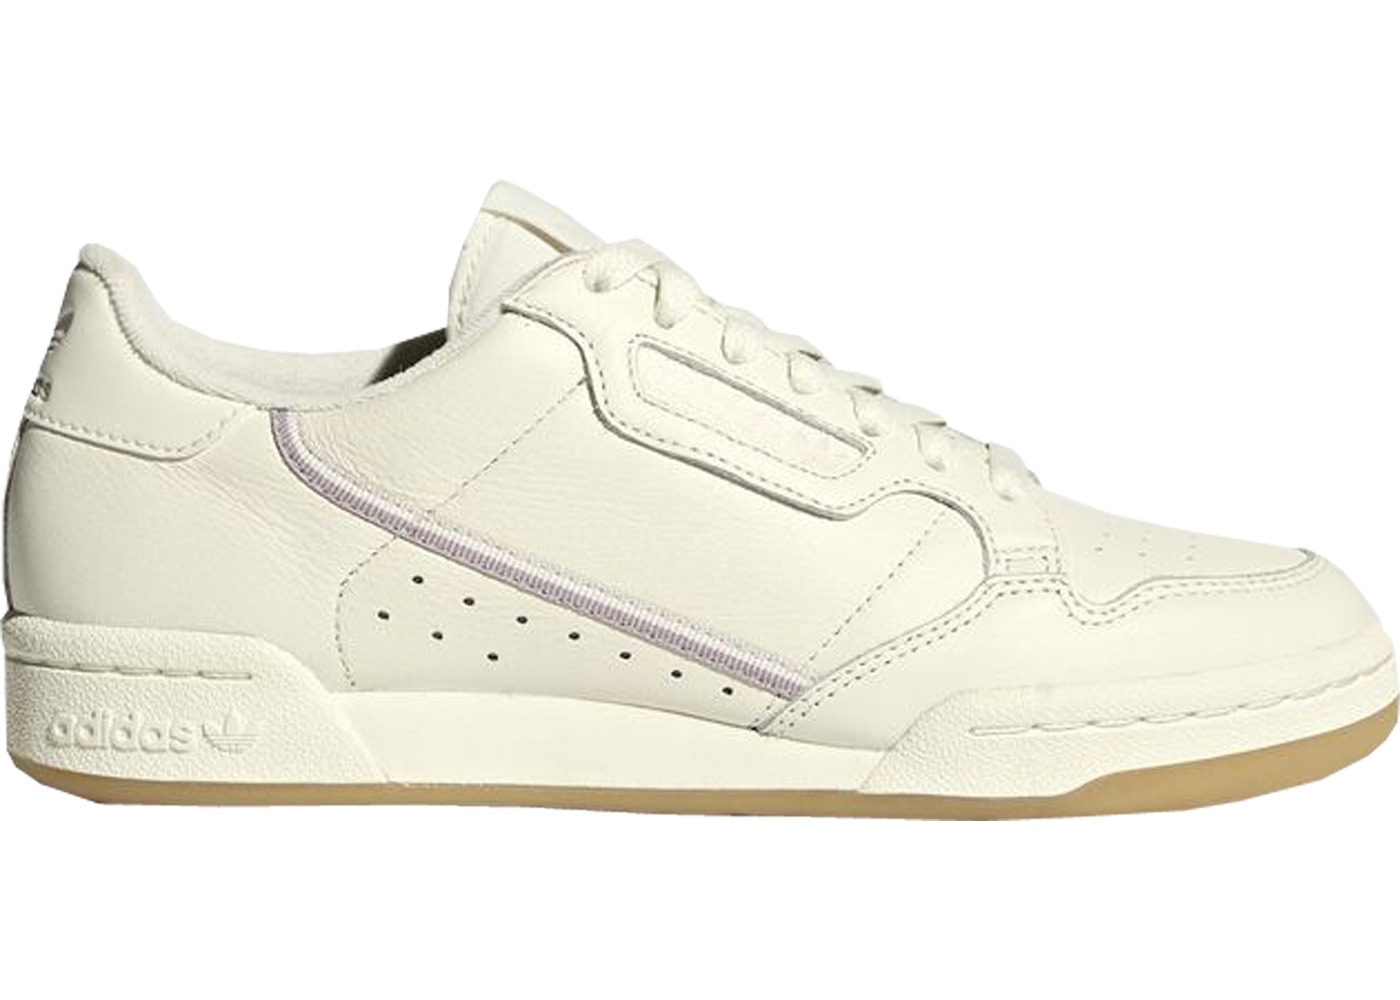 Aprovechar calcio Continental  adidas Continental 80 Off White Orchid Tint - G27718